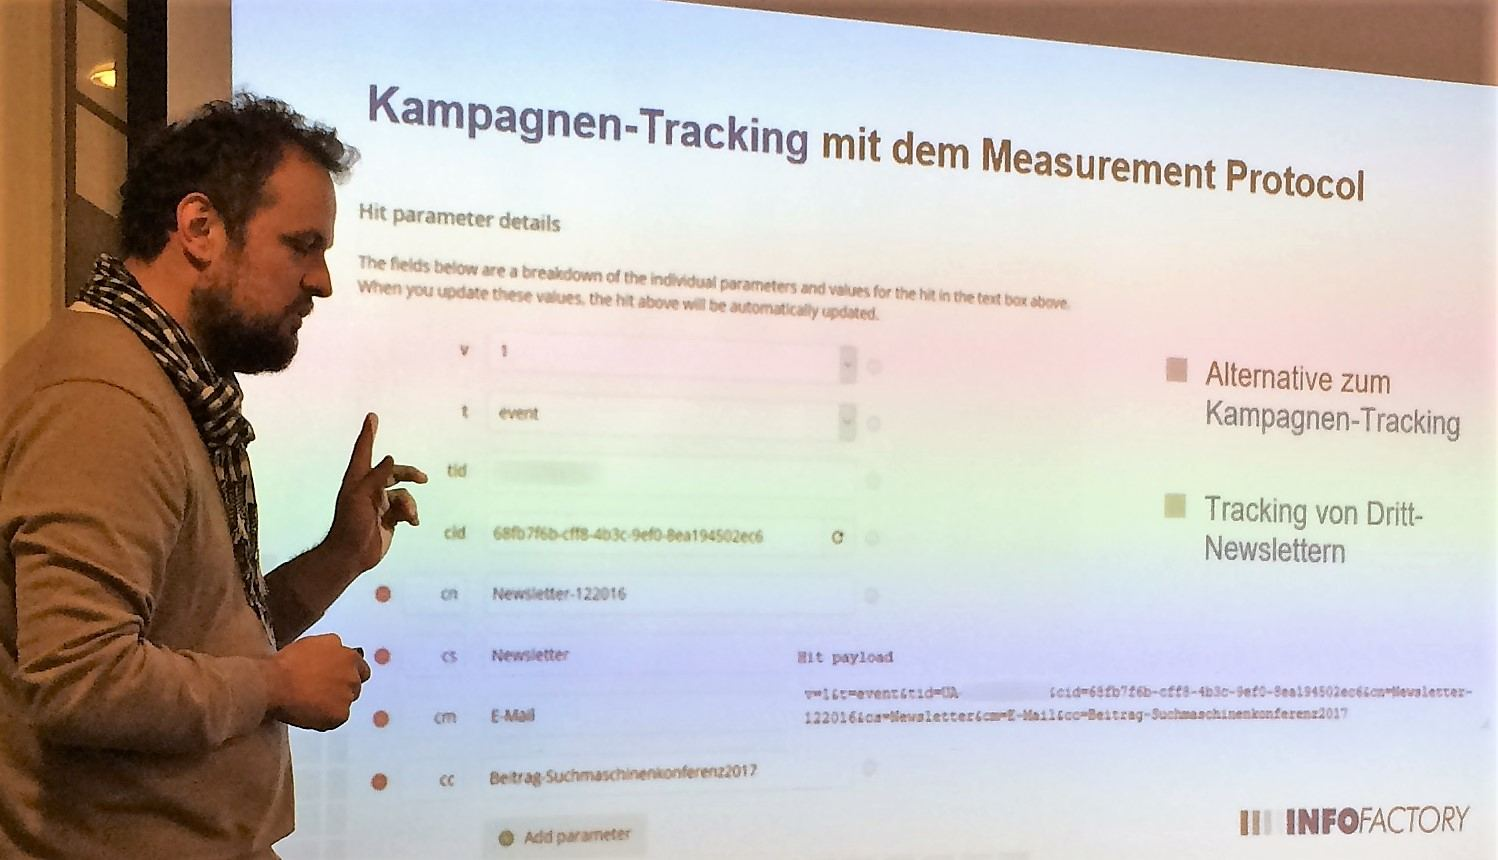 Kampagnen-Tracking mit dem Measurement Protocol